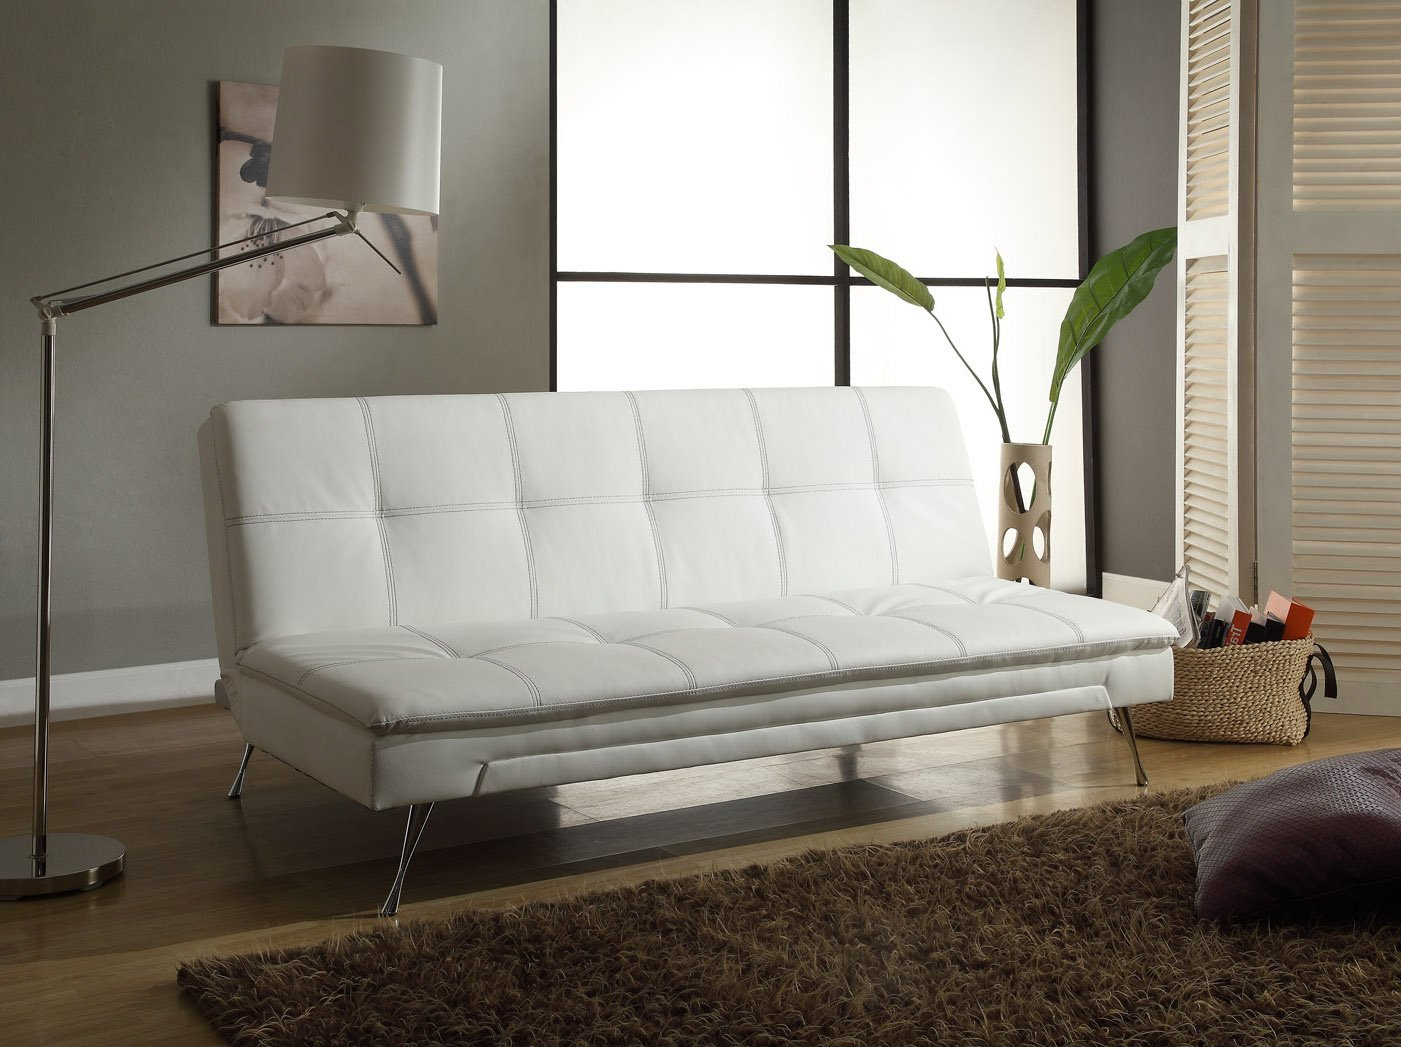 Buy cheap sofa cheap sectional sofa for Buy a cheap couch